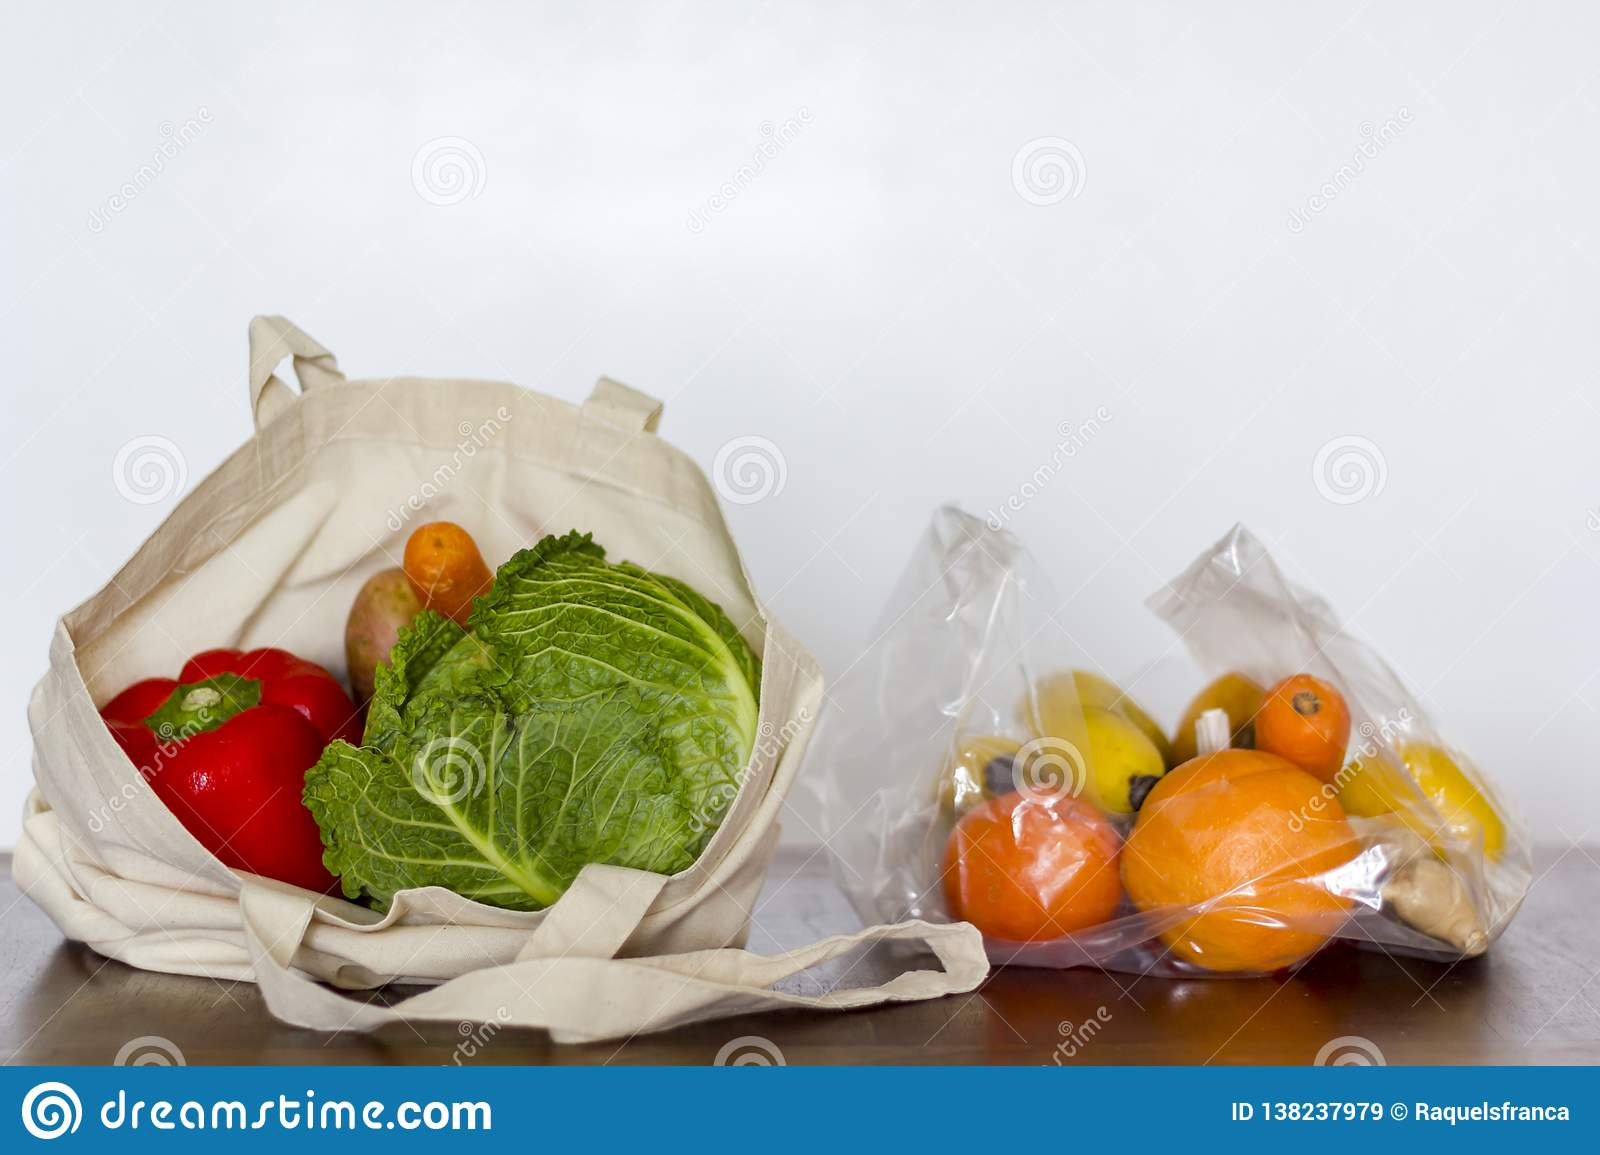 Eco reusable bag with vegetables and plastic bag with fruits